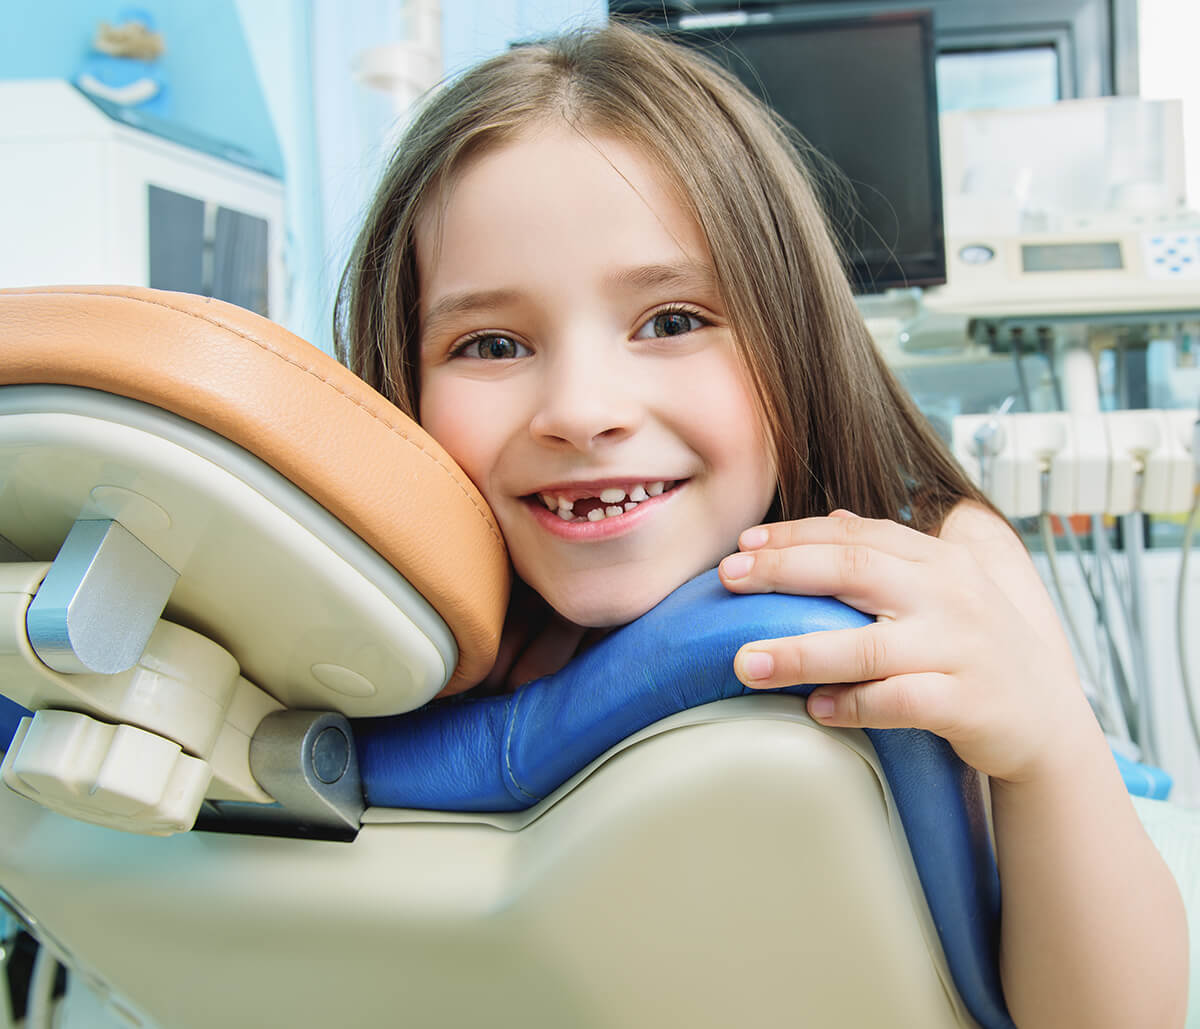 Emergency Dental Care for Children at Triad Pediatric Dentistry in Greensboro NC Area